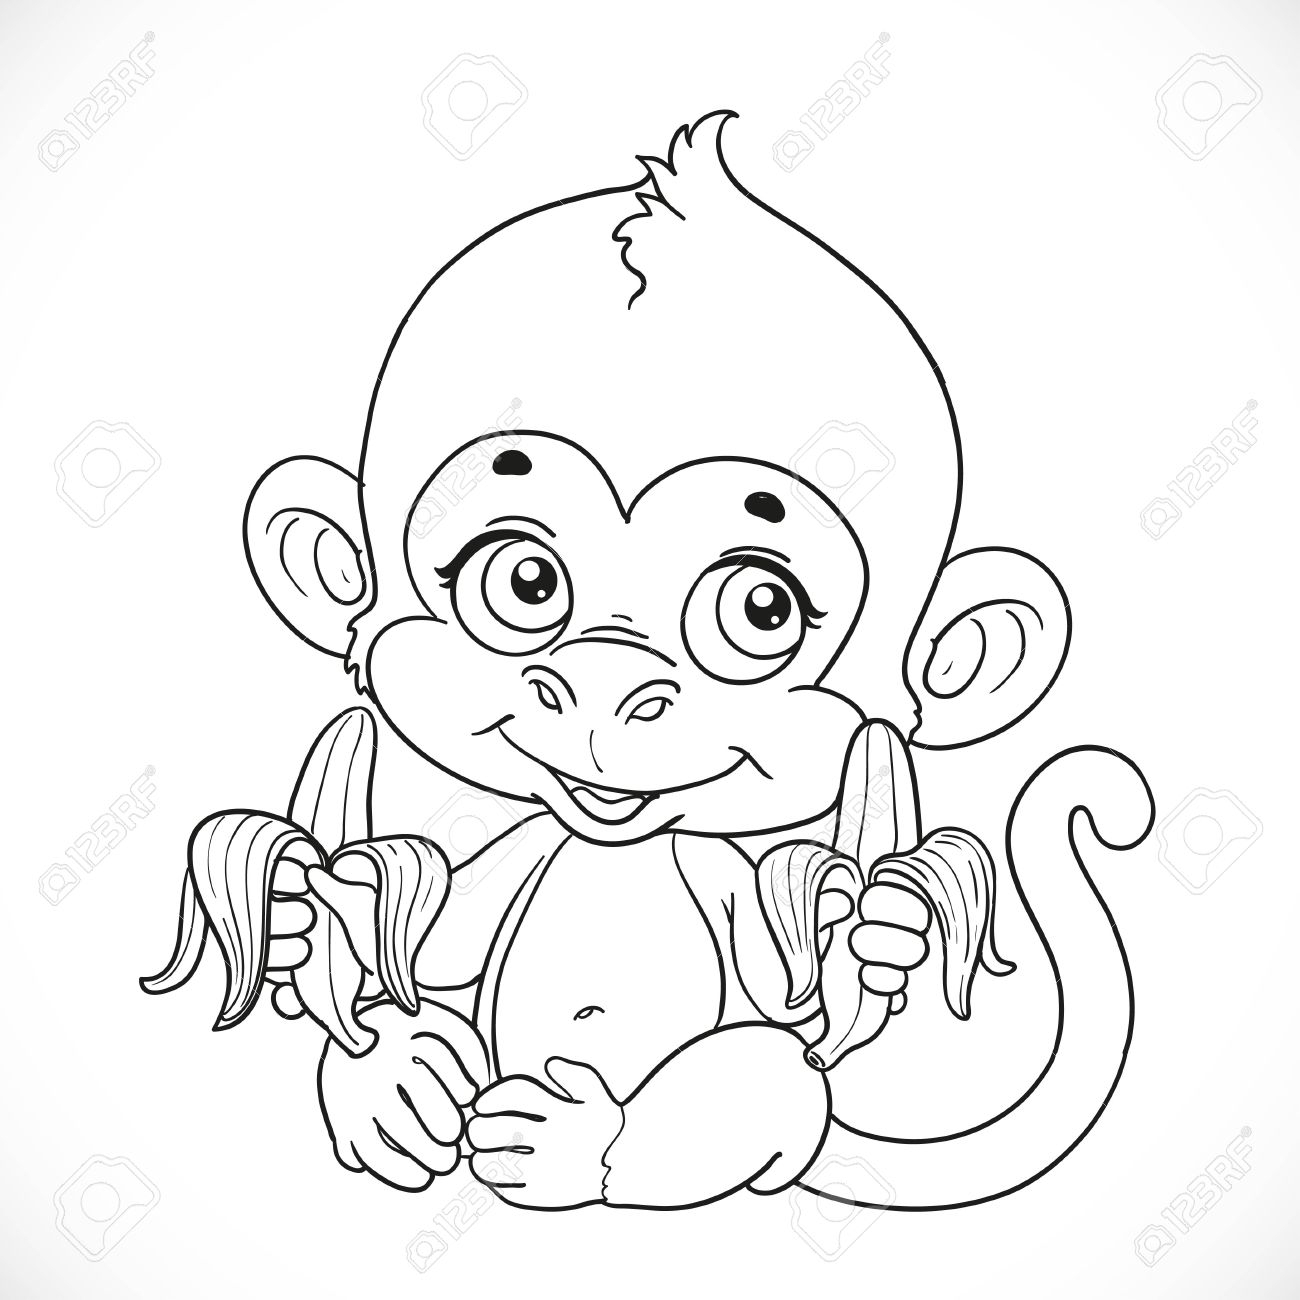 1300x1300 Cute Baby Monkey Drawings Cute Baby Monkey With Banana Outlined